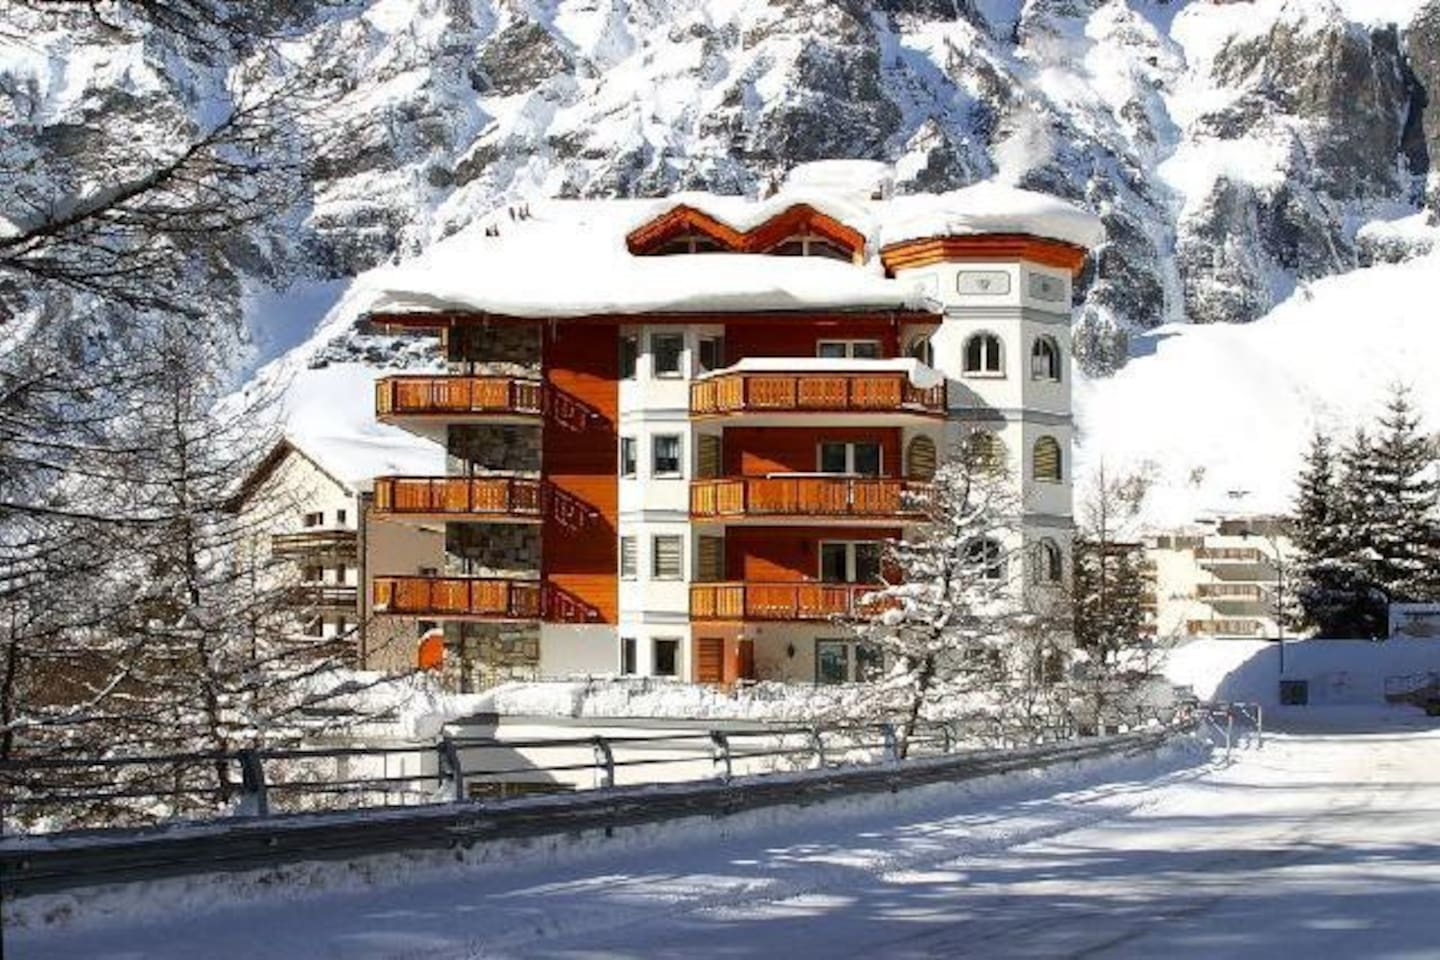 Perfect all year round with hiking trails on the doorstep, skiing up to the door in Winter and the largest thermal spa resort in the Alps.  3.9 million liters of bubbling natural thermal waters of up to 51°C (122°F) fill Leukerbad's pools daily.